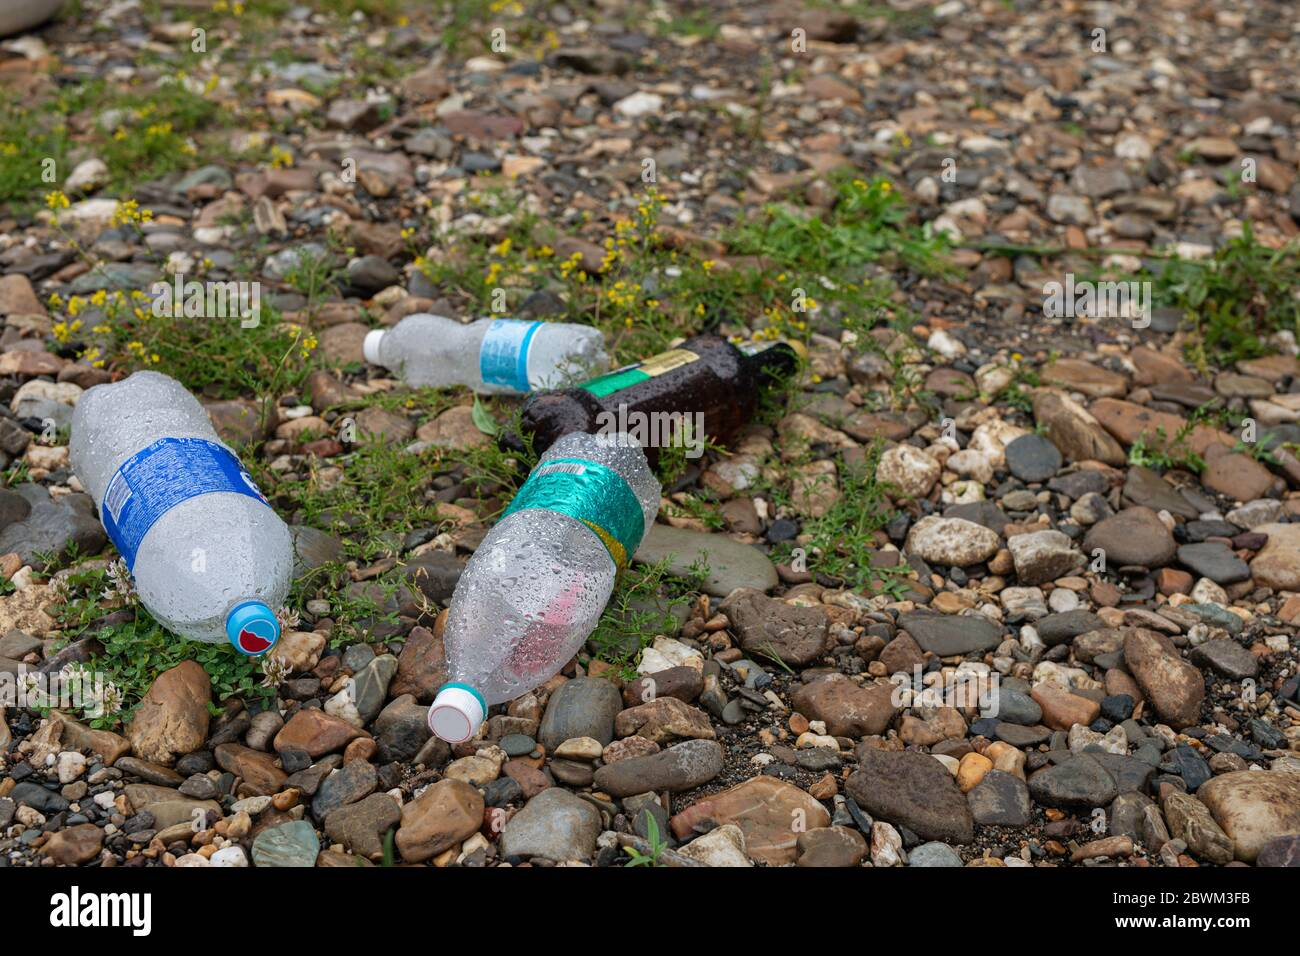 plastic bottles, trash thrown on grass. Garbage dump in forest. Plastic and food waste concept. Stock Photo